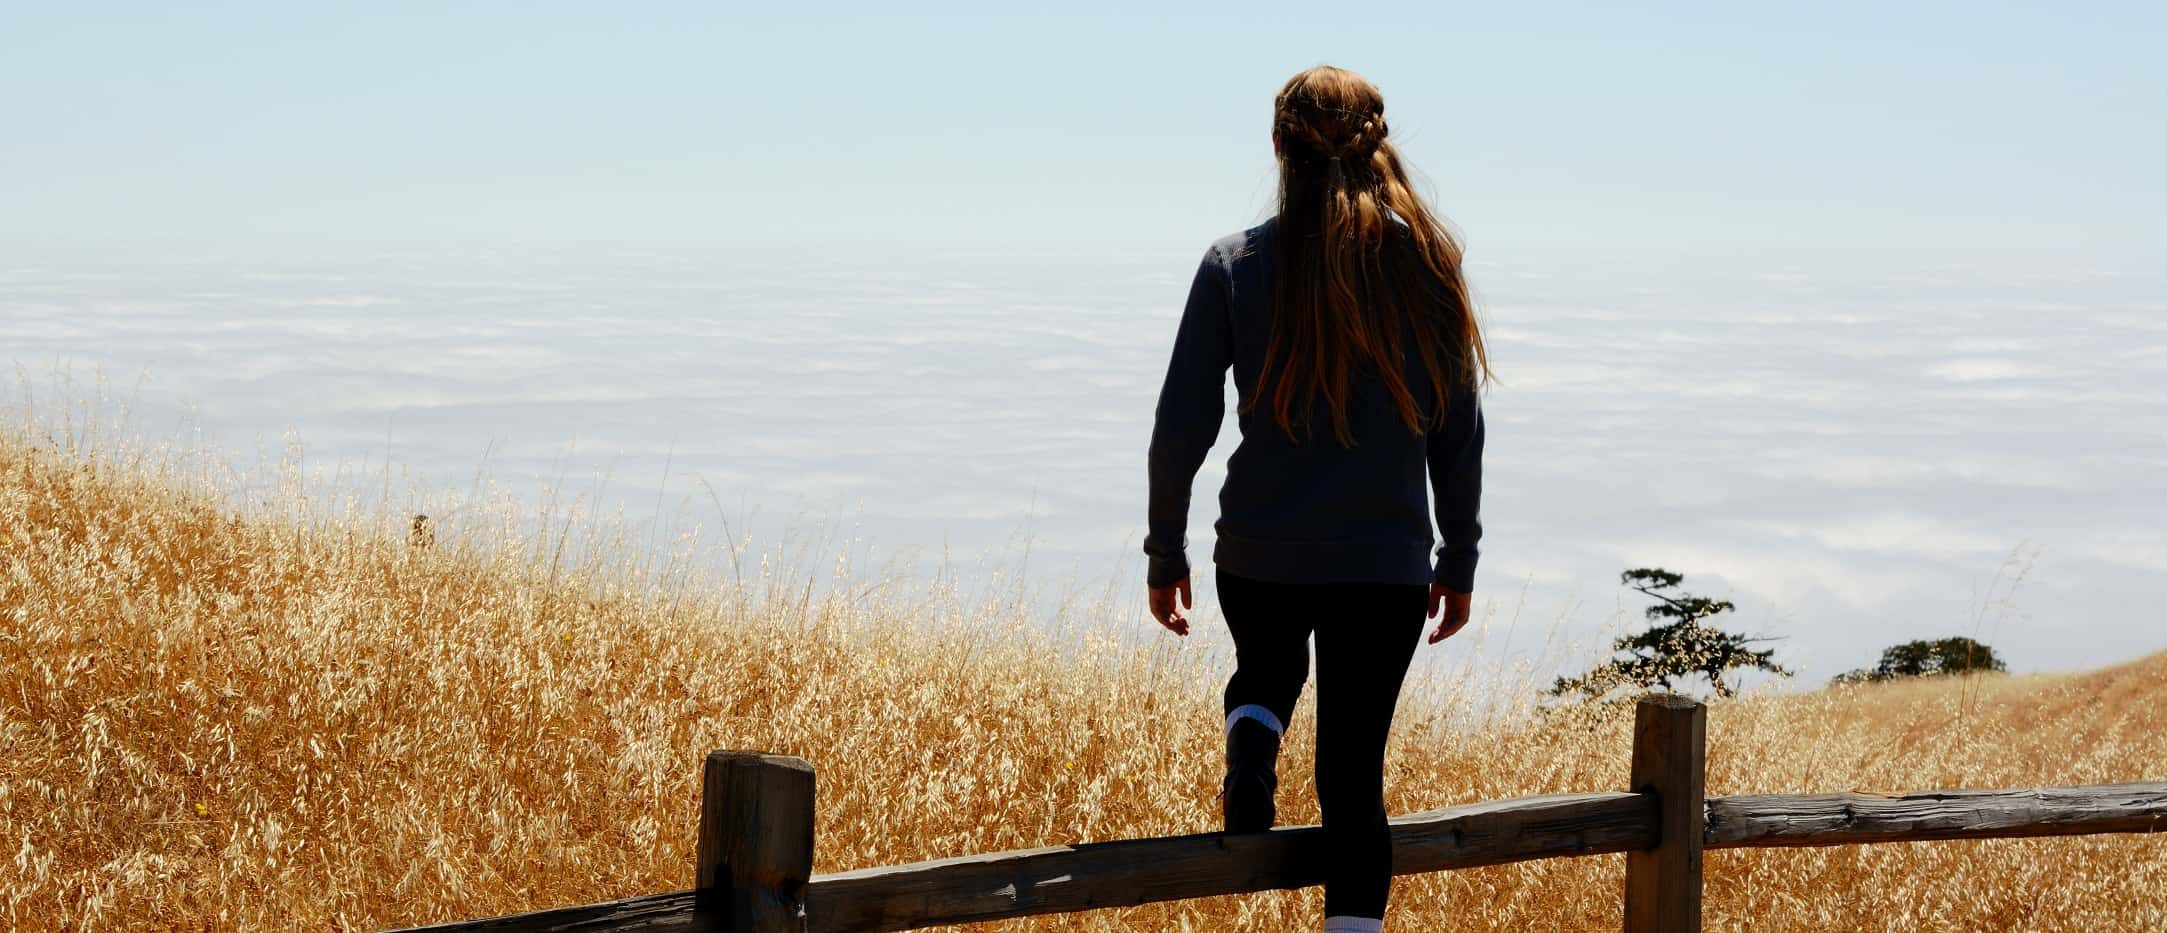 Are Obstacles a Sign that You're on the Wrong Path?